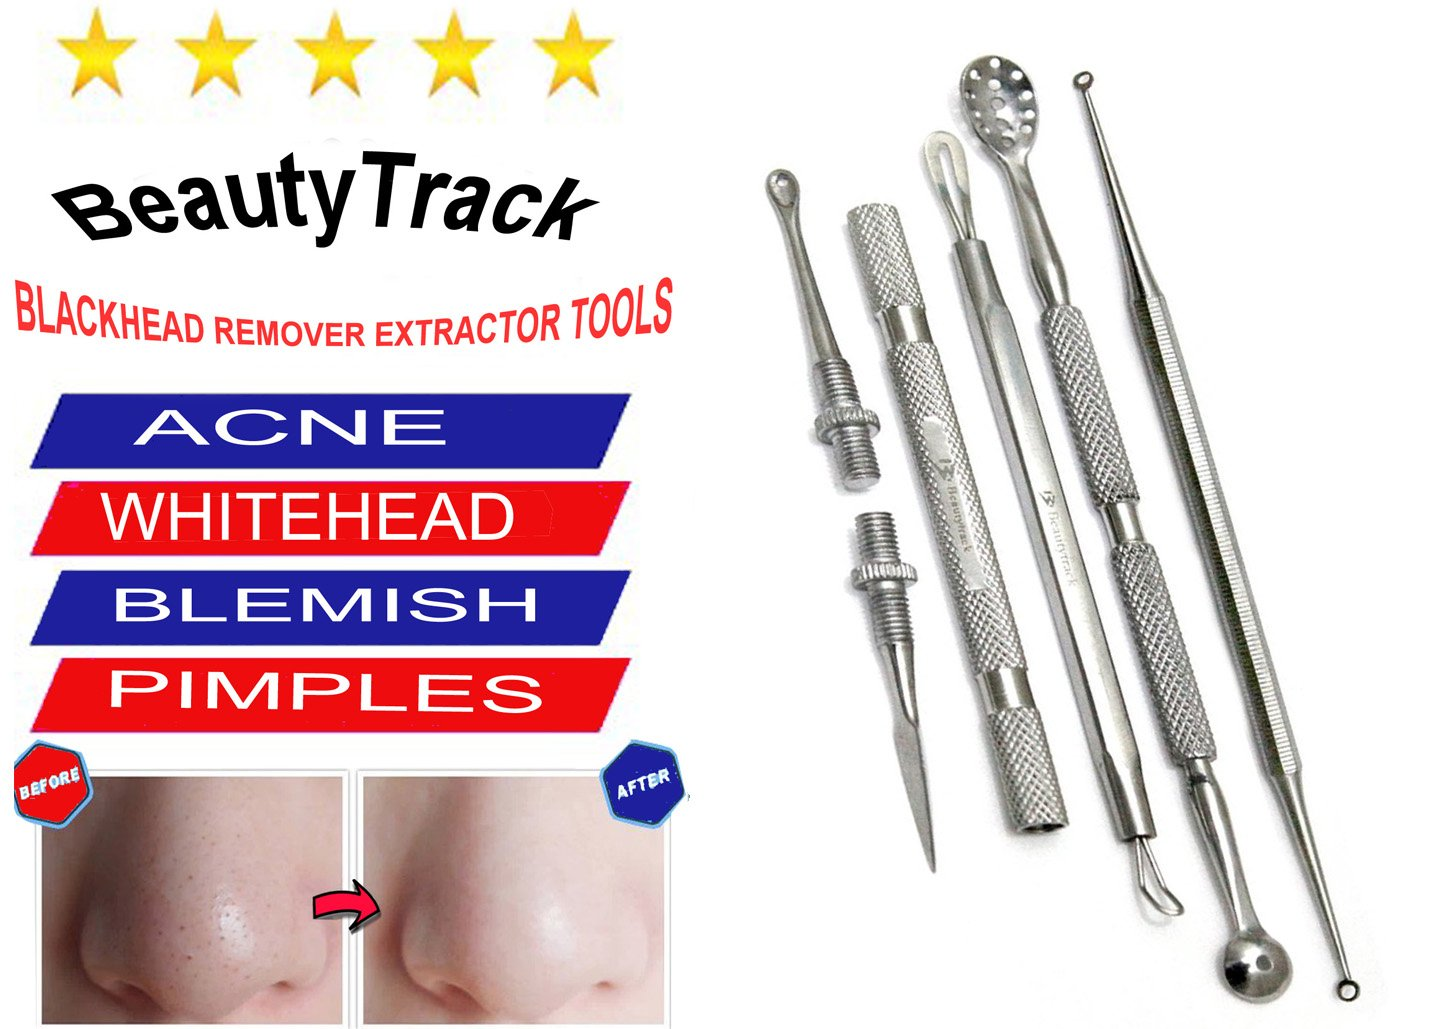 Professional Blackheads Whiteheads Remover Extractor Acne Comedone Facial Tool Double Ring End BeautyTrack